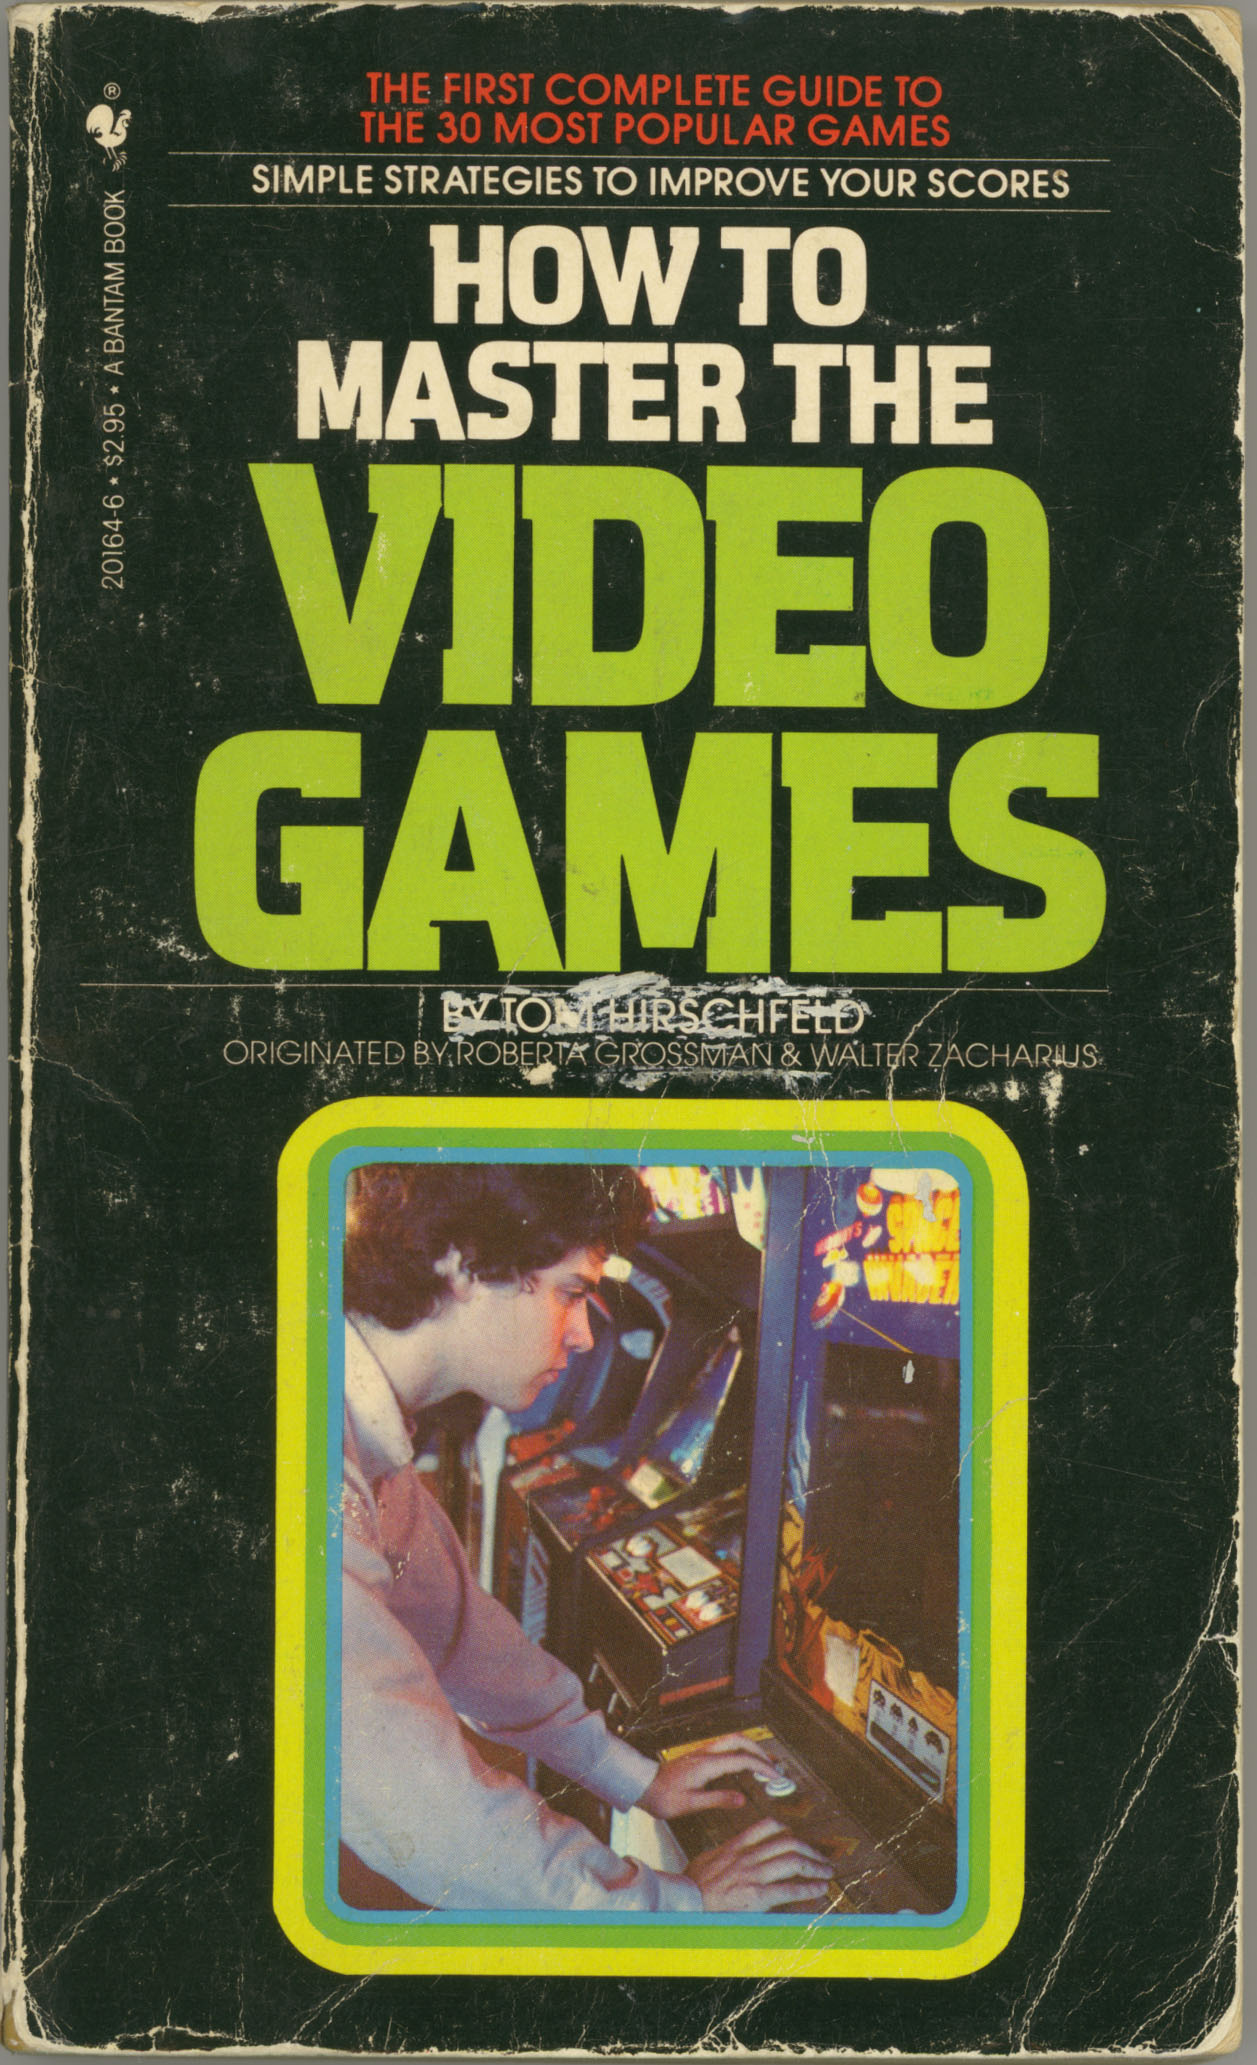 How to Master the Video Games (Cover).jpg